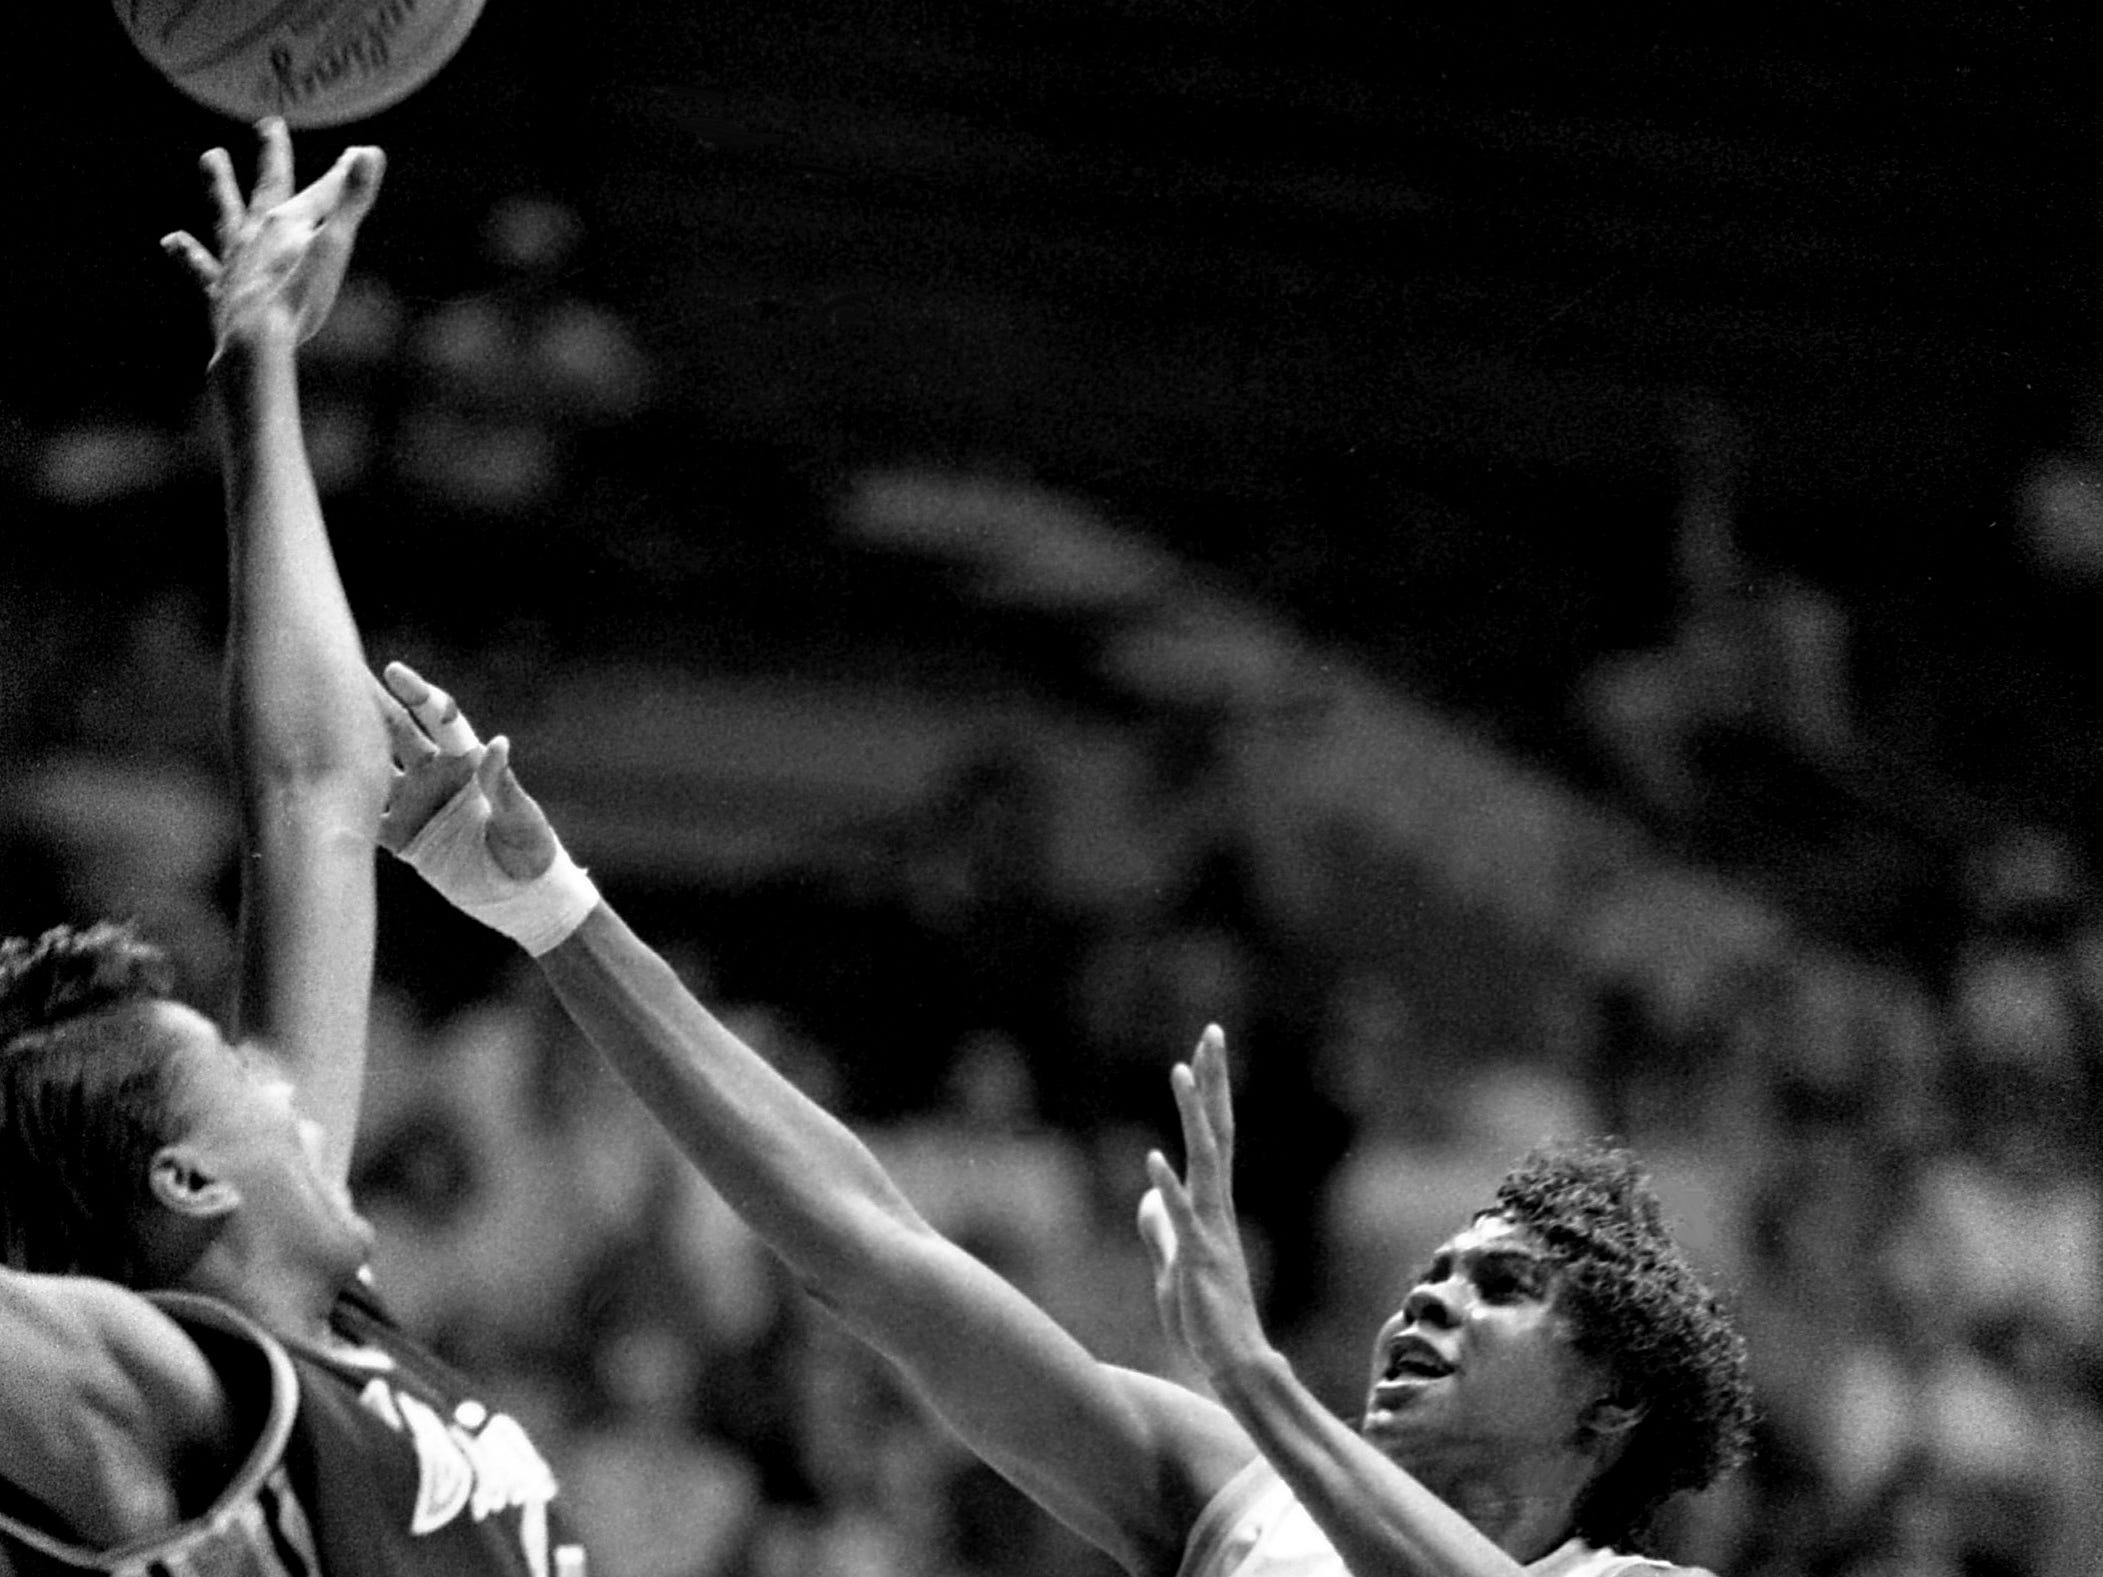 Tennessee senior Bridgette Gordon (30) gets her shot off over Virginia defender Audra Smith. The No. 1 ranked Lady Vols smashed Virginia 80-47 in the NCAA East Regional semifinals at Western Kentucky's Diddle Arena in Bowling Green, Kentucky, March 23, 1989.